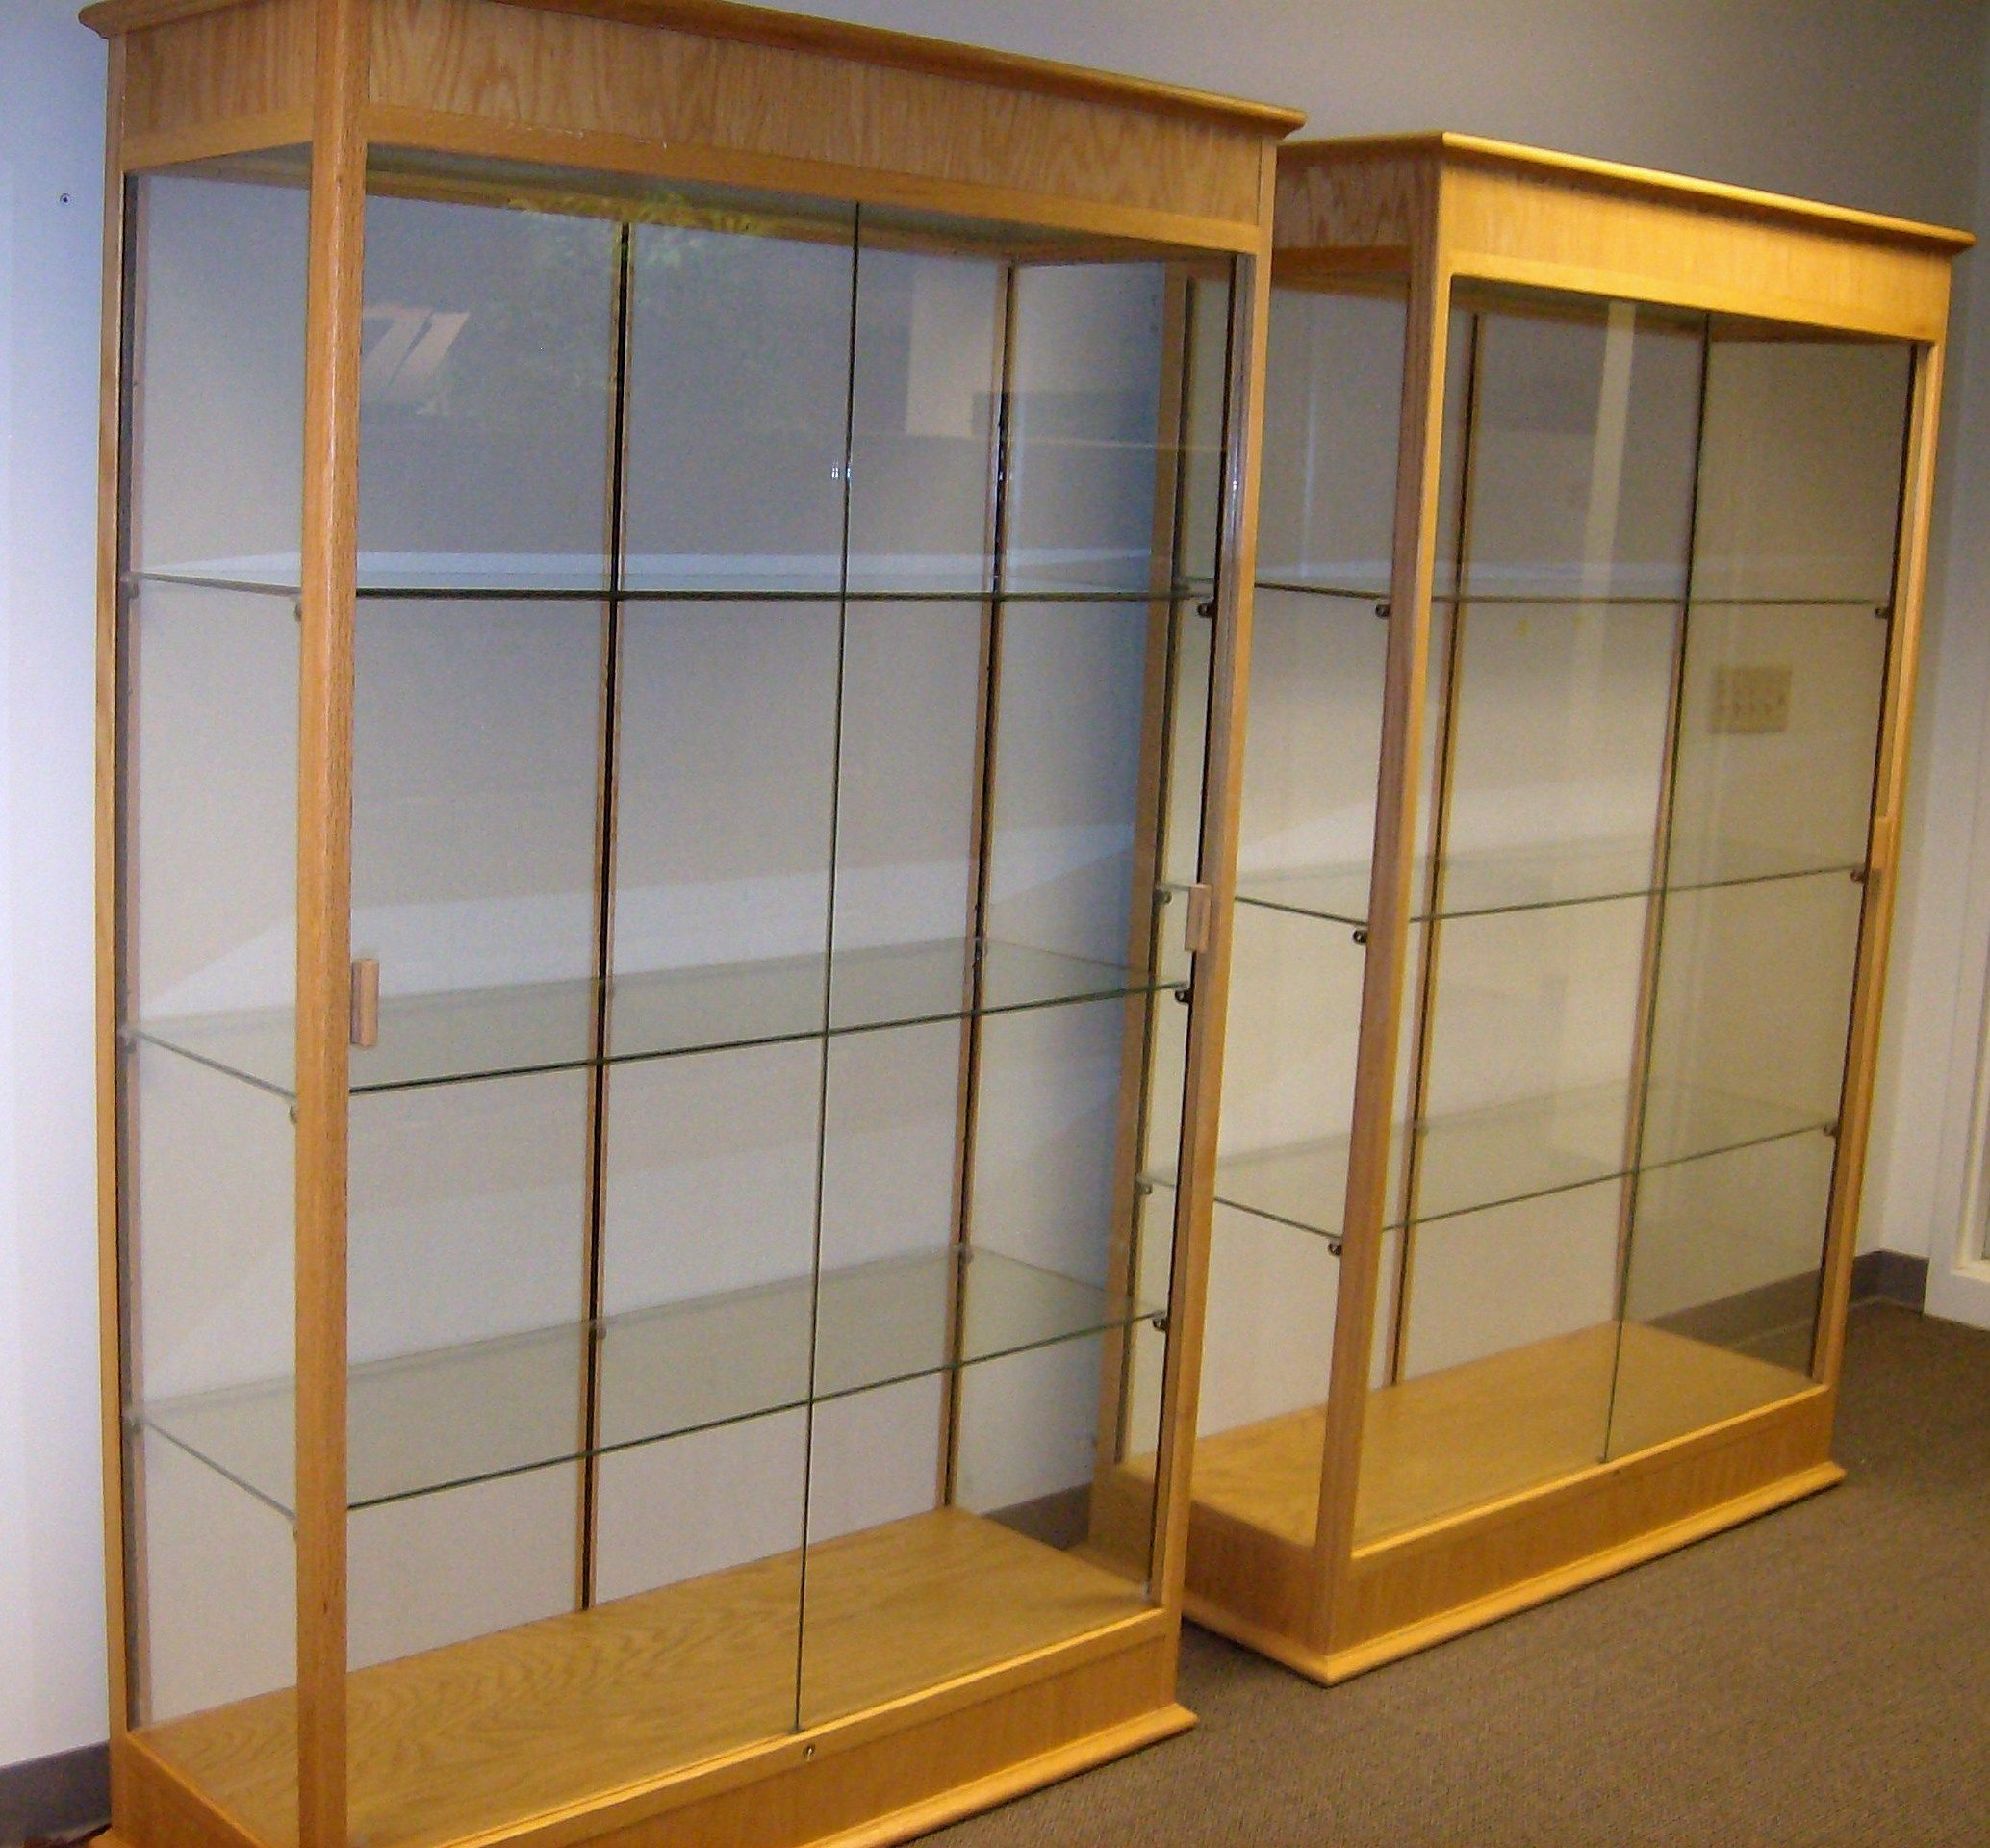 Modern Display Cabinet Display Cabinets Description Display Cabinets Jpg